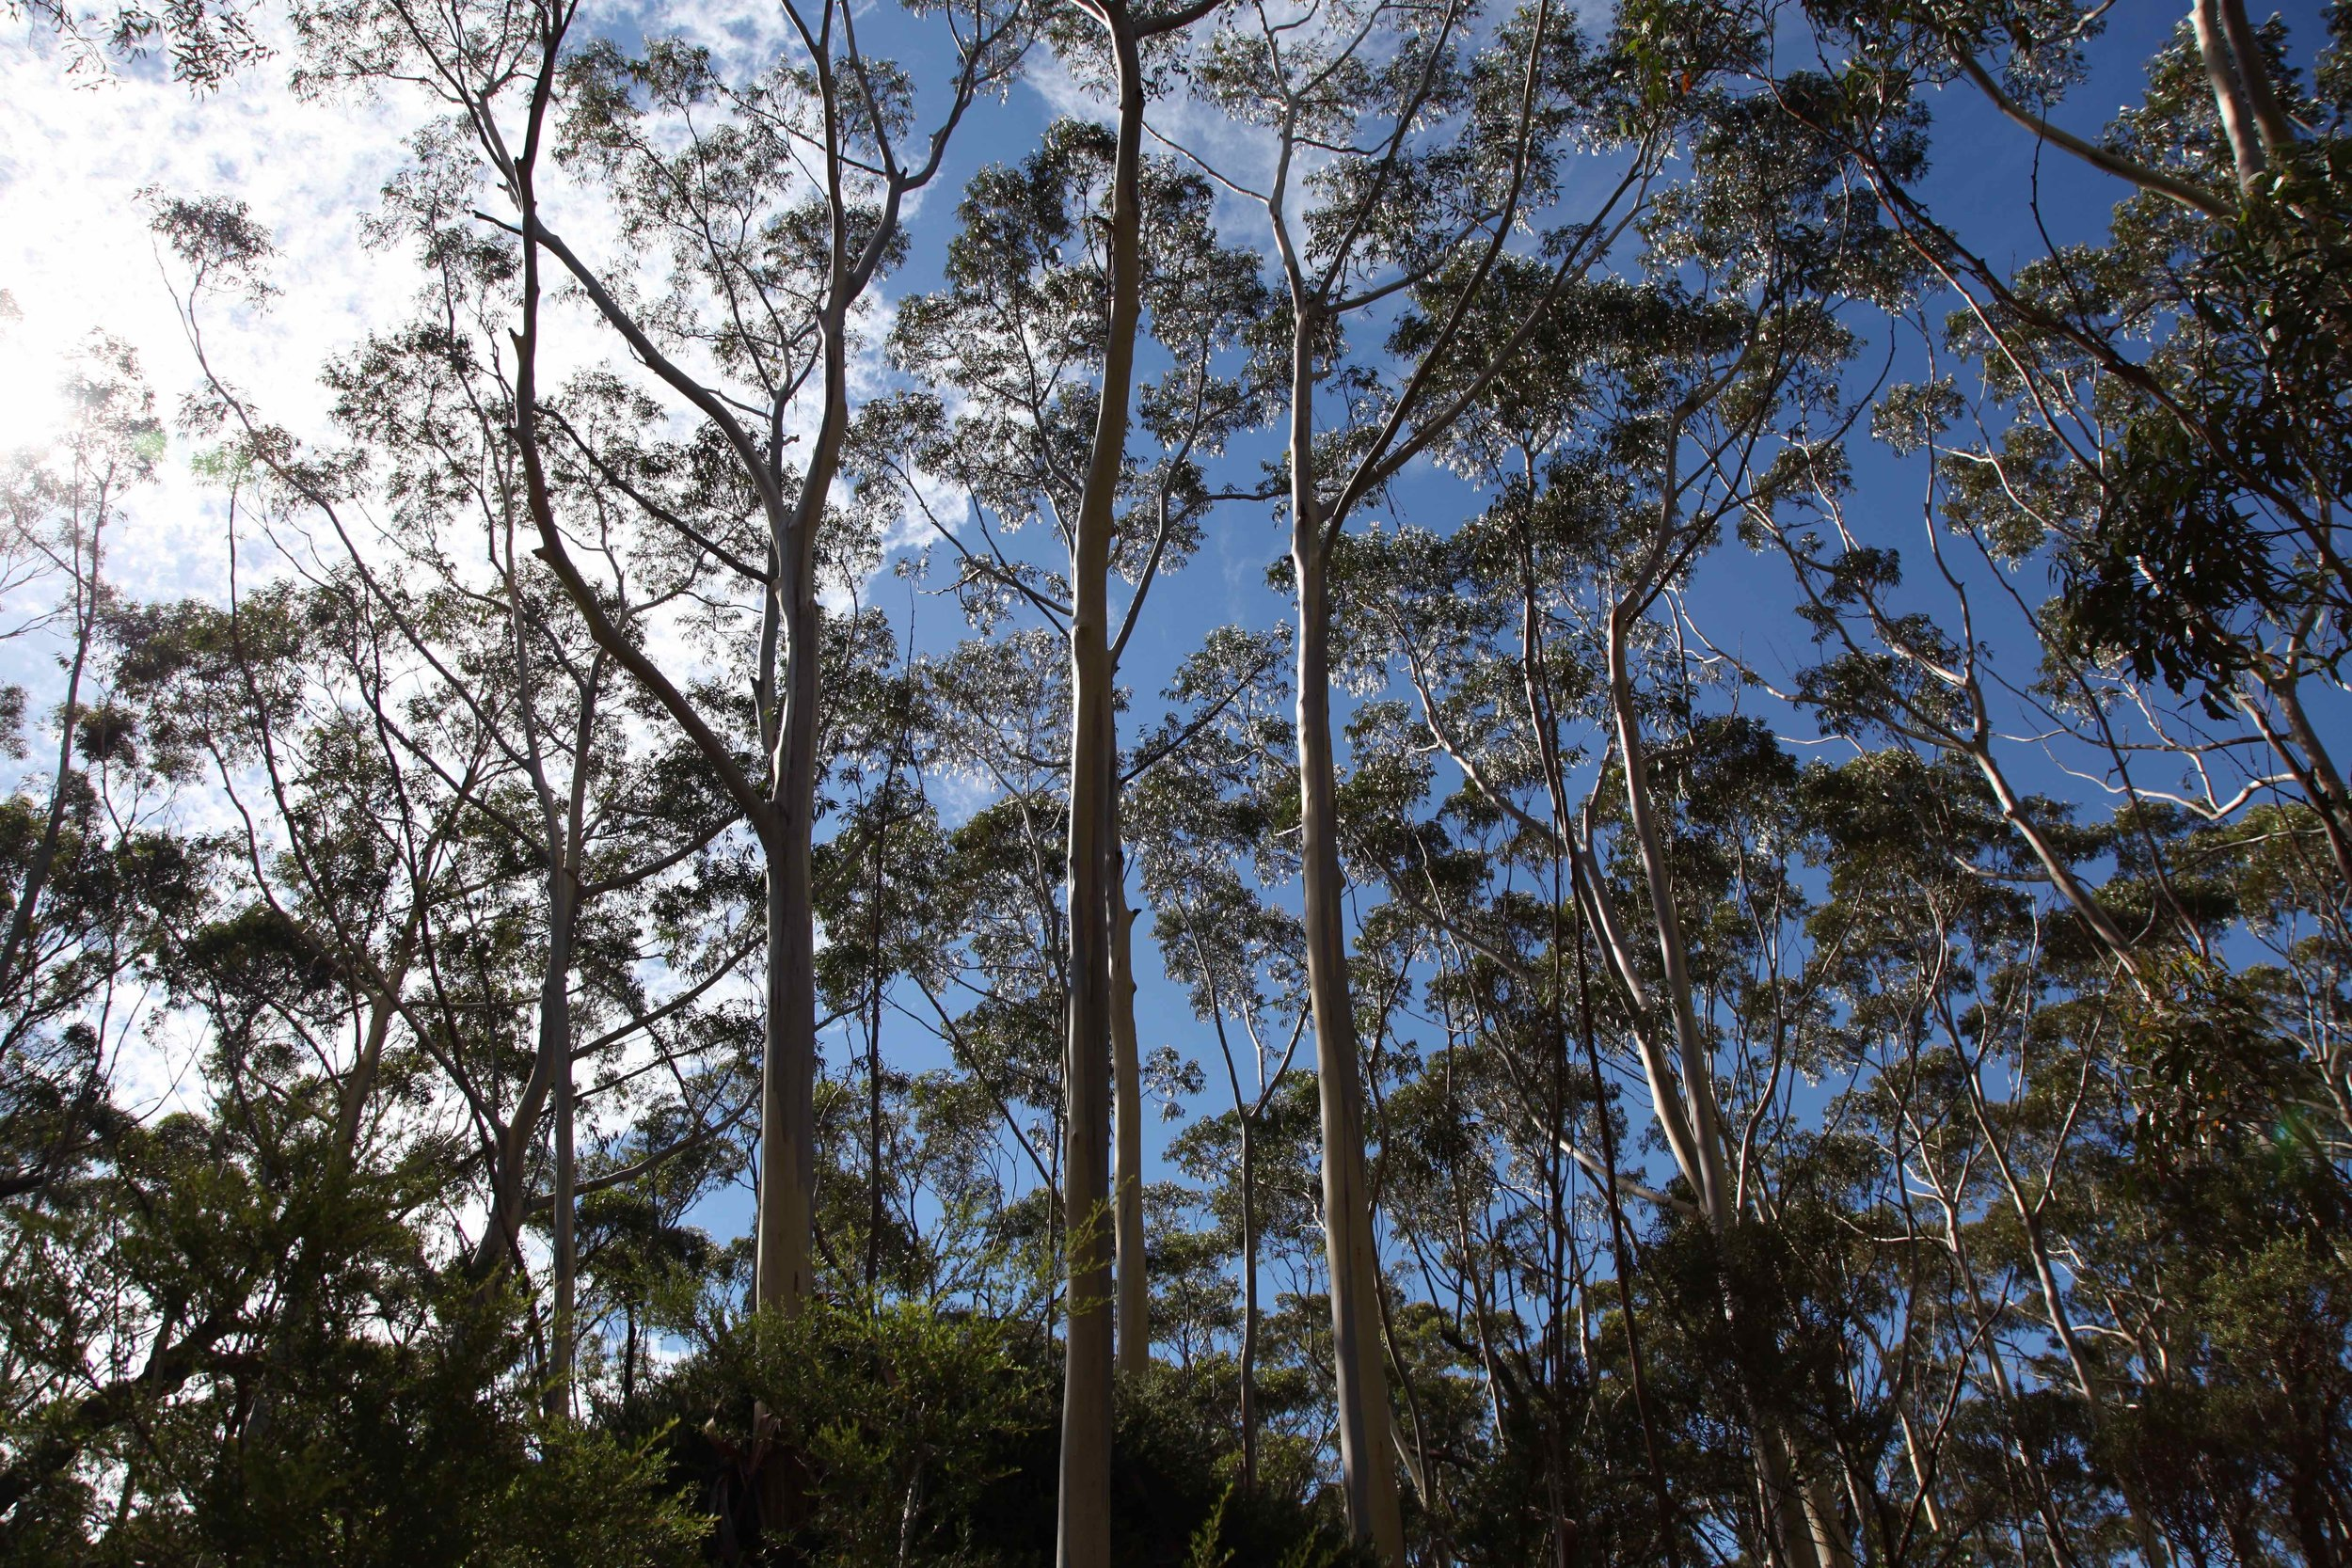 Narrow Neck is a plateau so the majority of the walk is quite exposed — it's a good idea to take a full brim hat, plenty of water, and sunscreen... and enjoy the shady parts of the trail when you reach them.